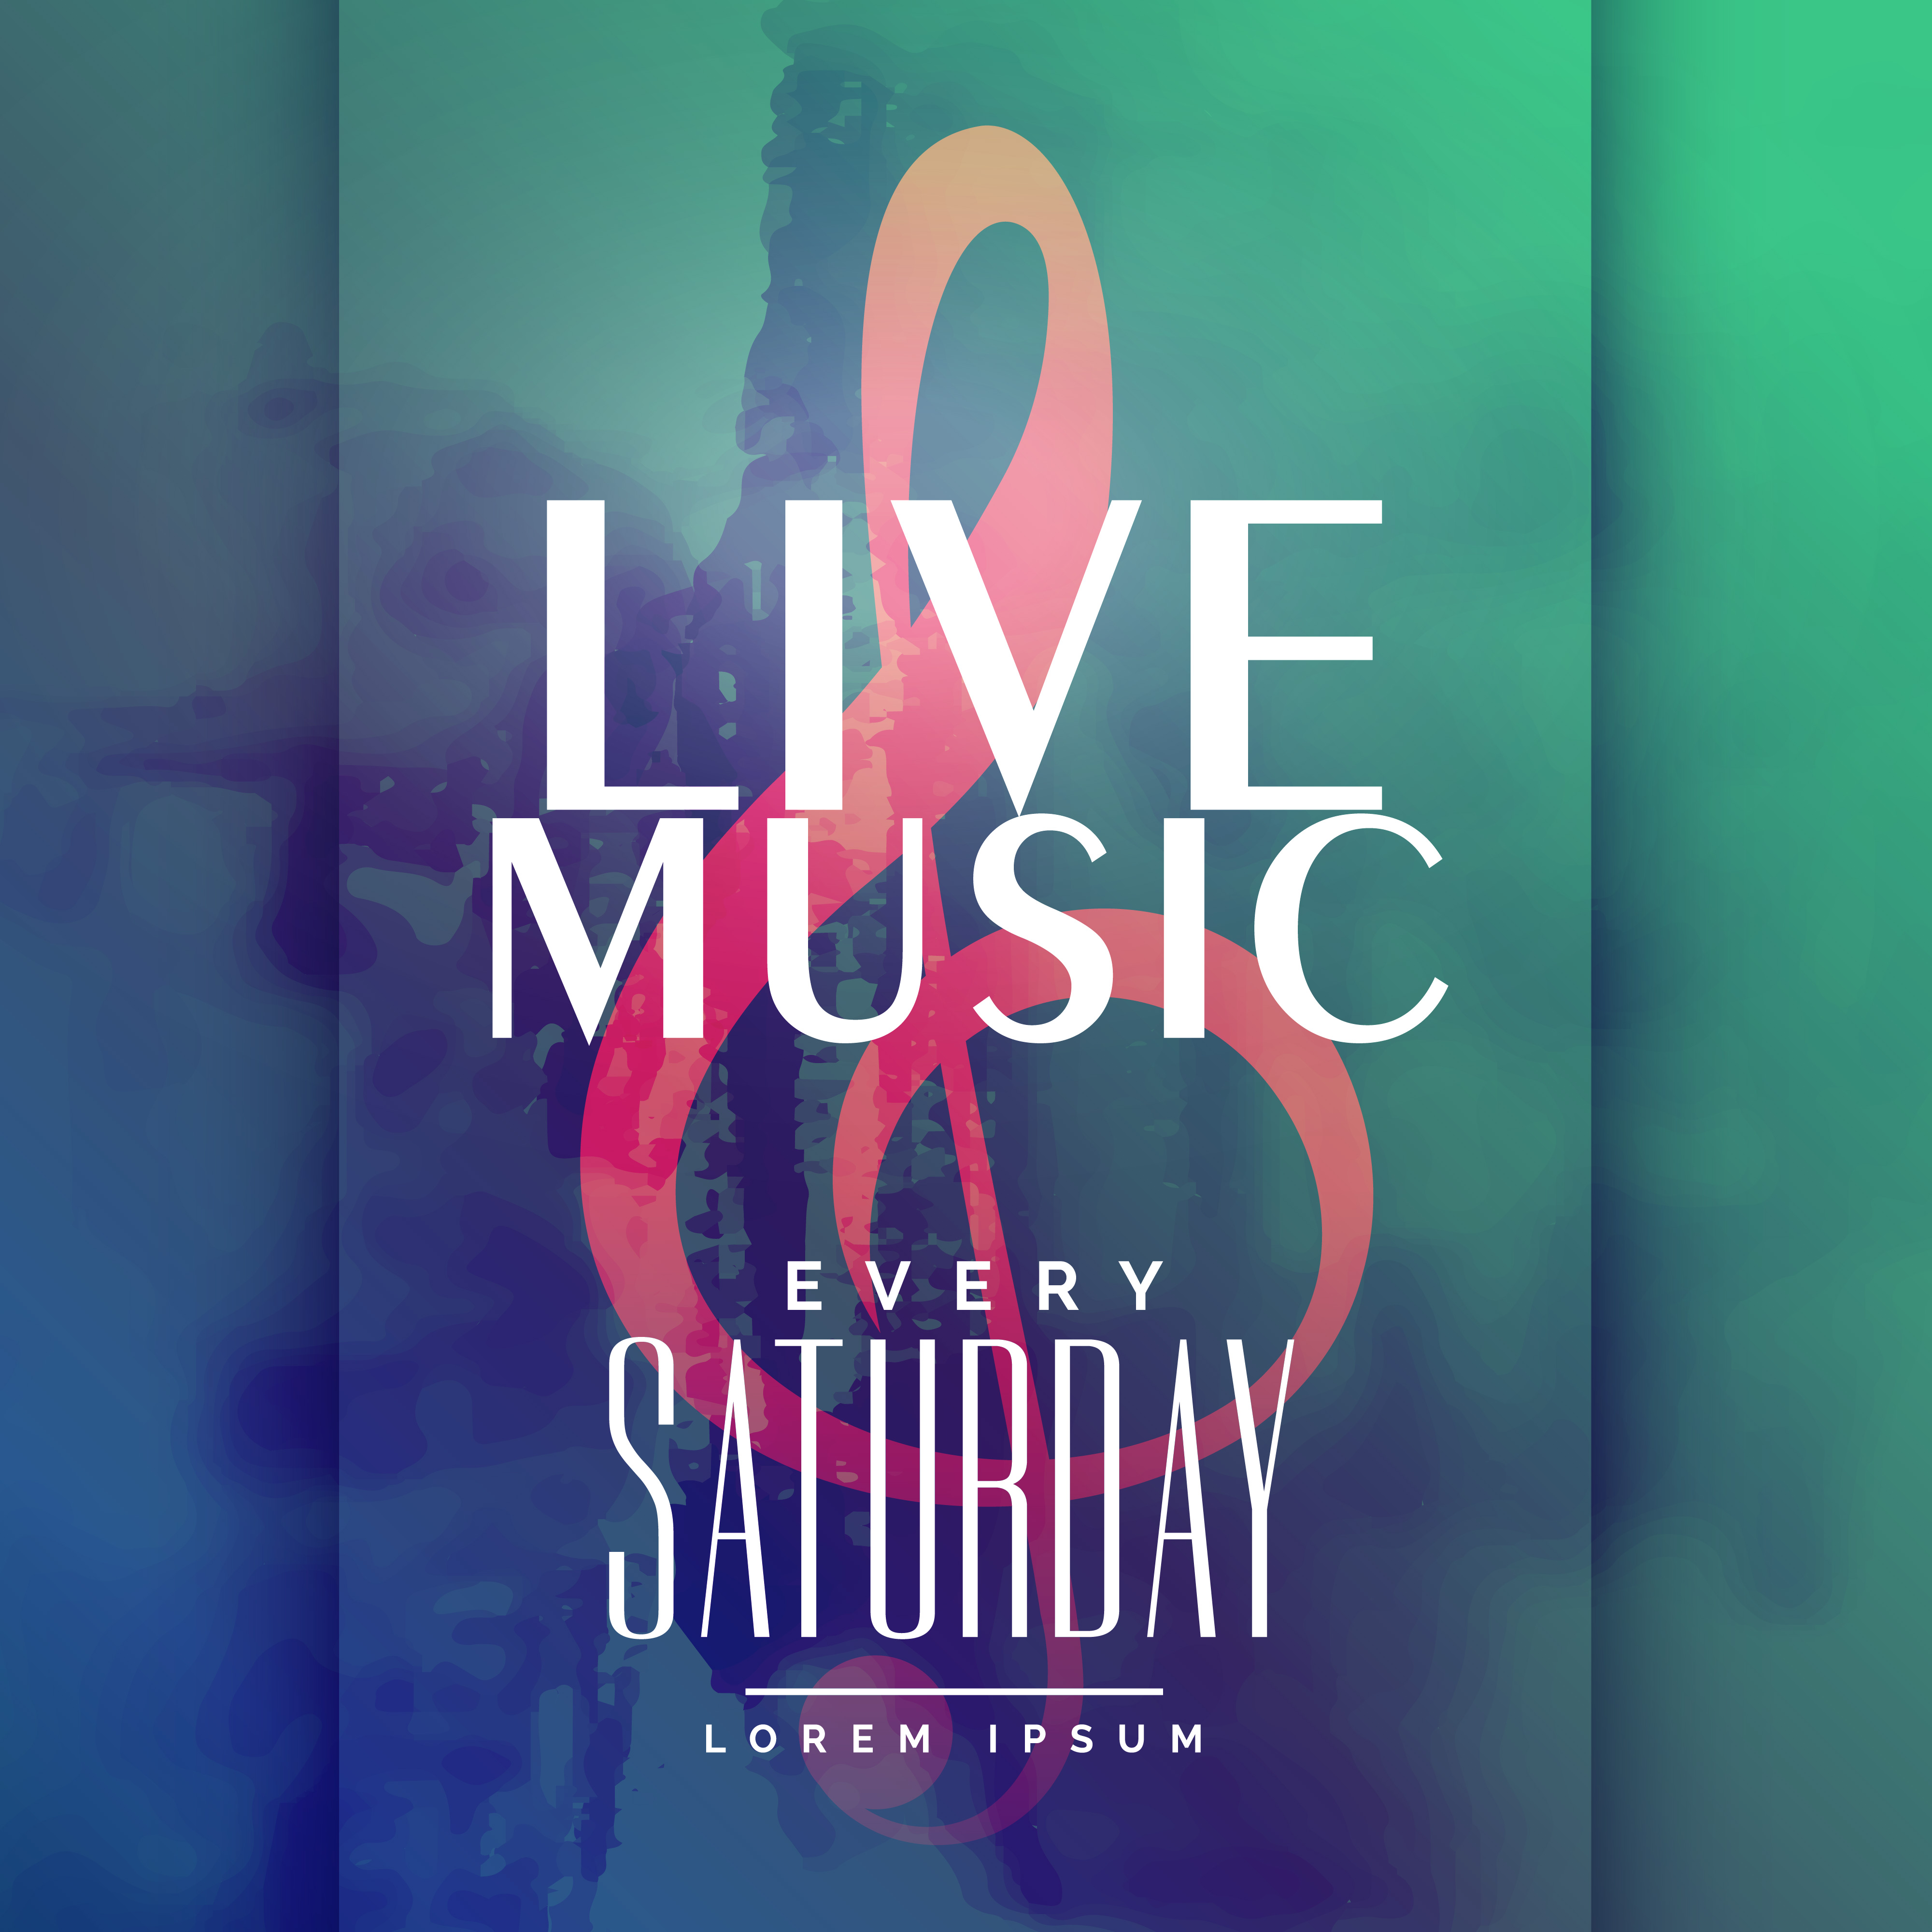 Arts Live Song Room: Live Music Event Poster Design Template